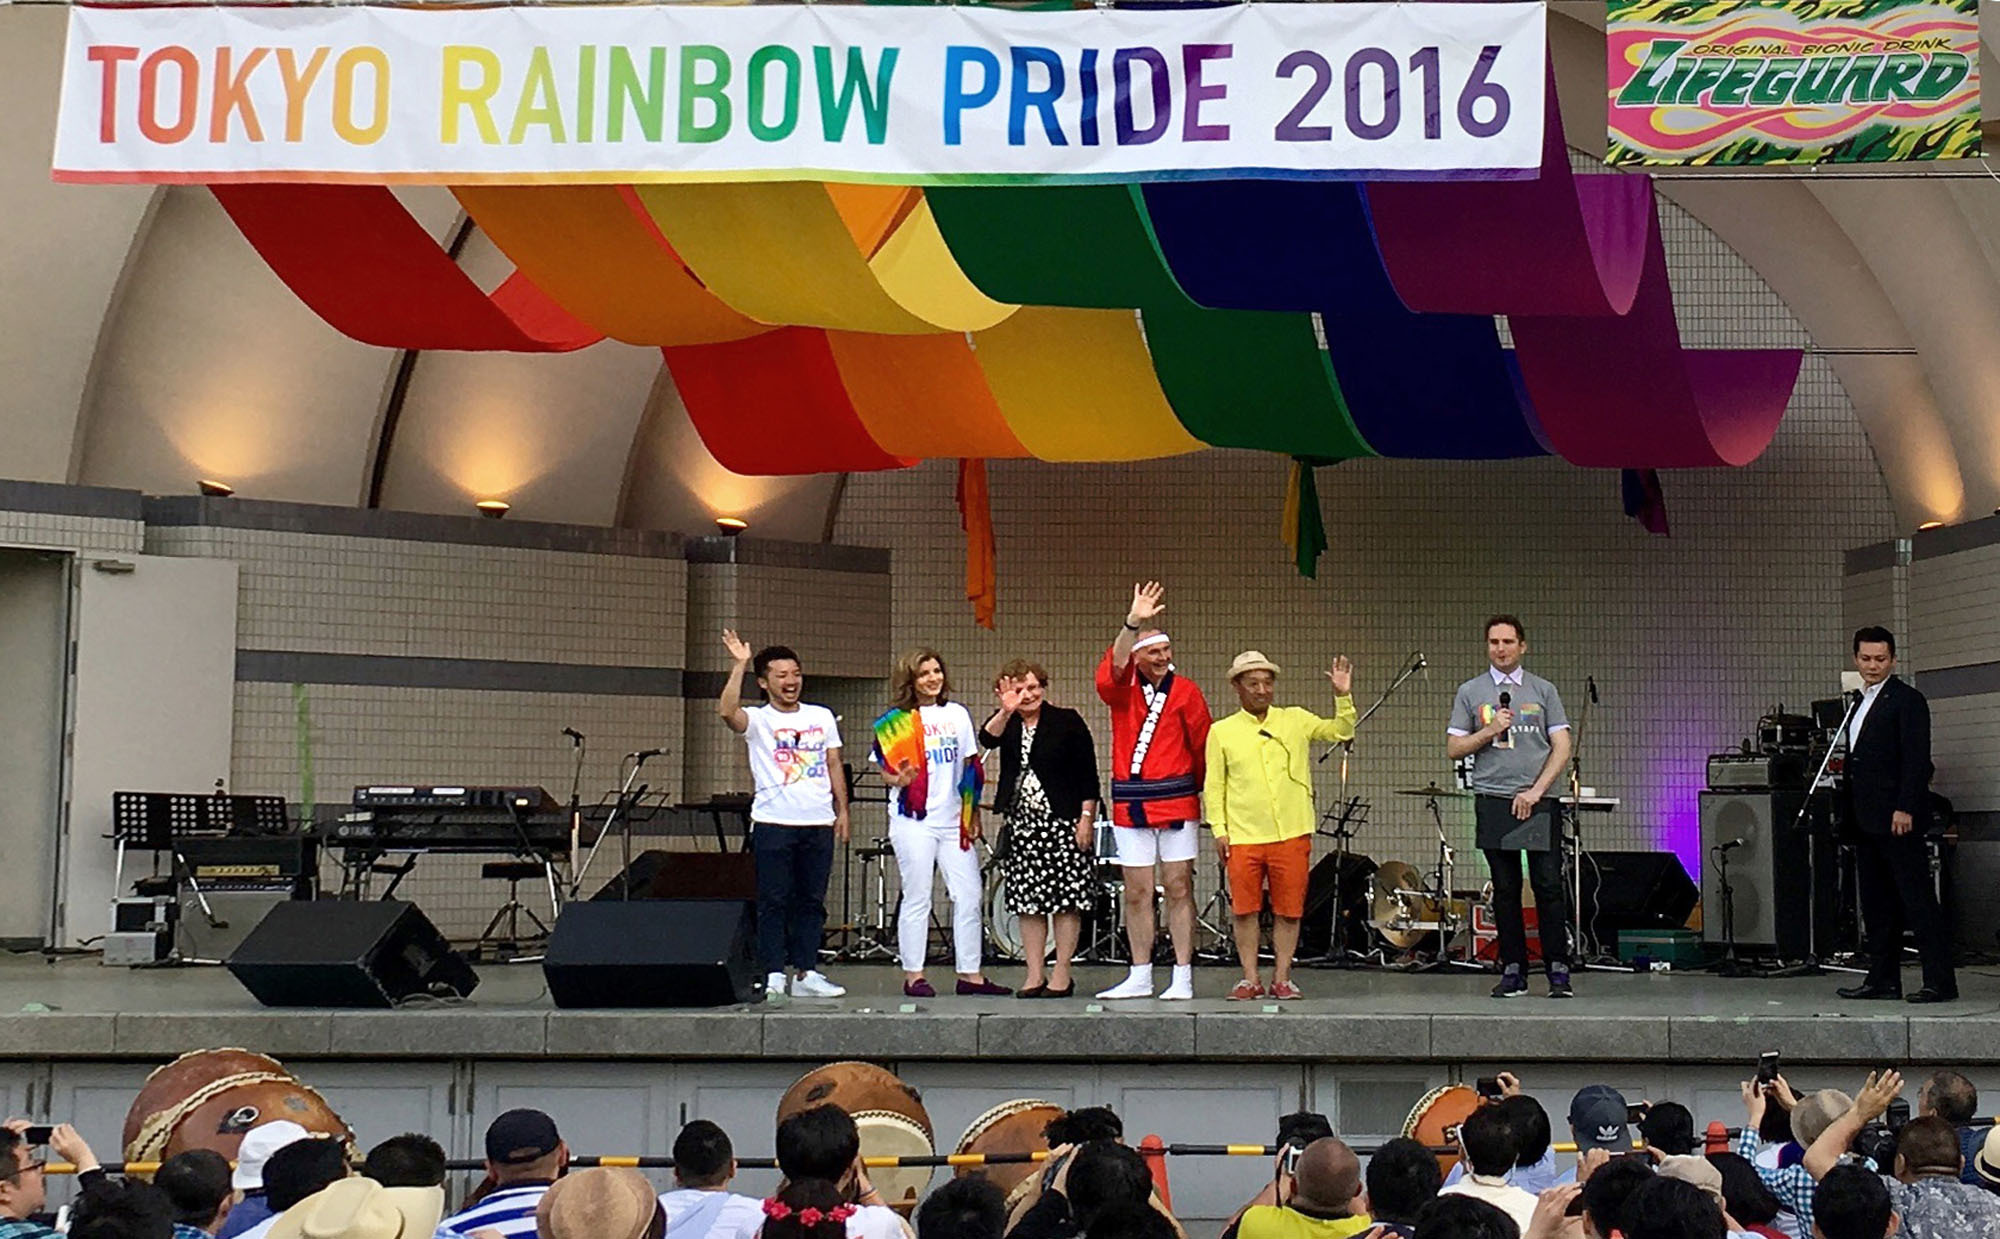 U.S. Ambassador Caroline Kennedy (second from left), Irish Ambassador Anne Barrington (third from left), British Ambassador Tim Hitchens (fourth from left) and Tokyo Rainbow Pride Board of Directors co-chairs Fumino Sugiyama (left) and Shinya Yamagata (fifth from left) wave to the audience following the ambassadors' speeches at Tokyo Rainbow Pride 2016, before a British Embassy taiko drum performance at Yoyogi Park in Tokyo on May 8. | BRITISH EMBASSY